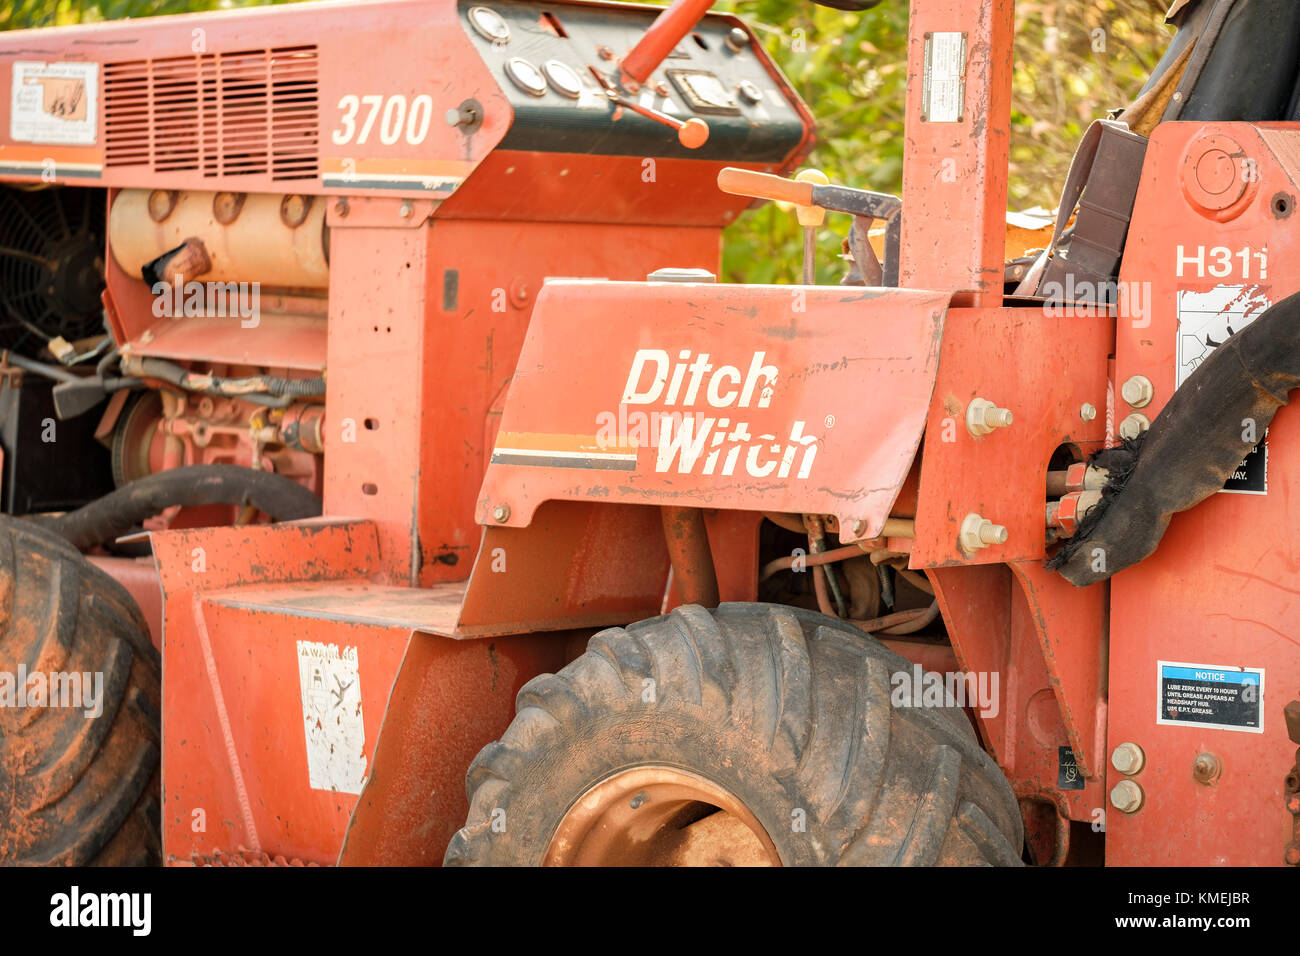 Trencher Stock Photos & Trencher Stock Images - Alamy